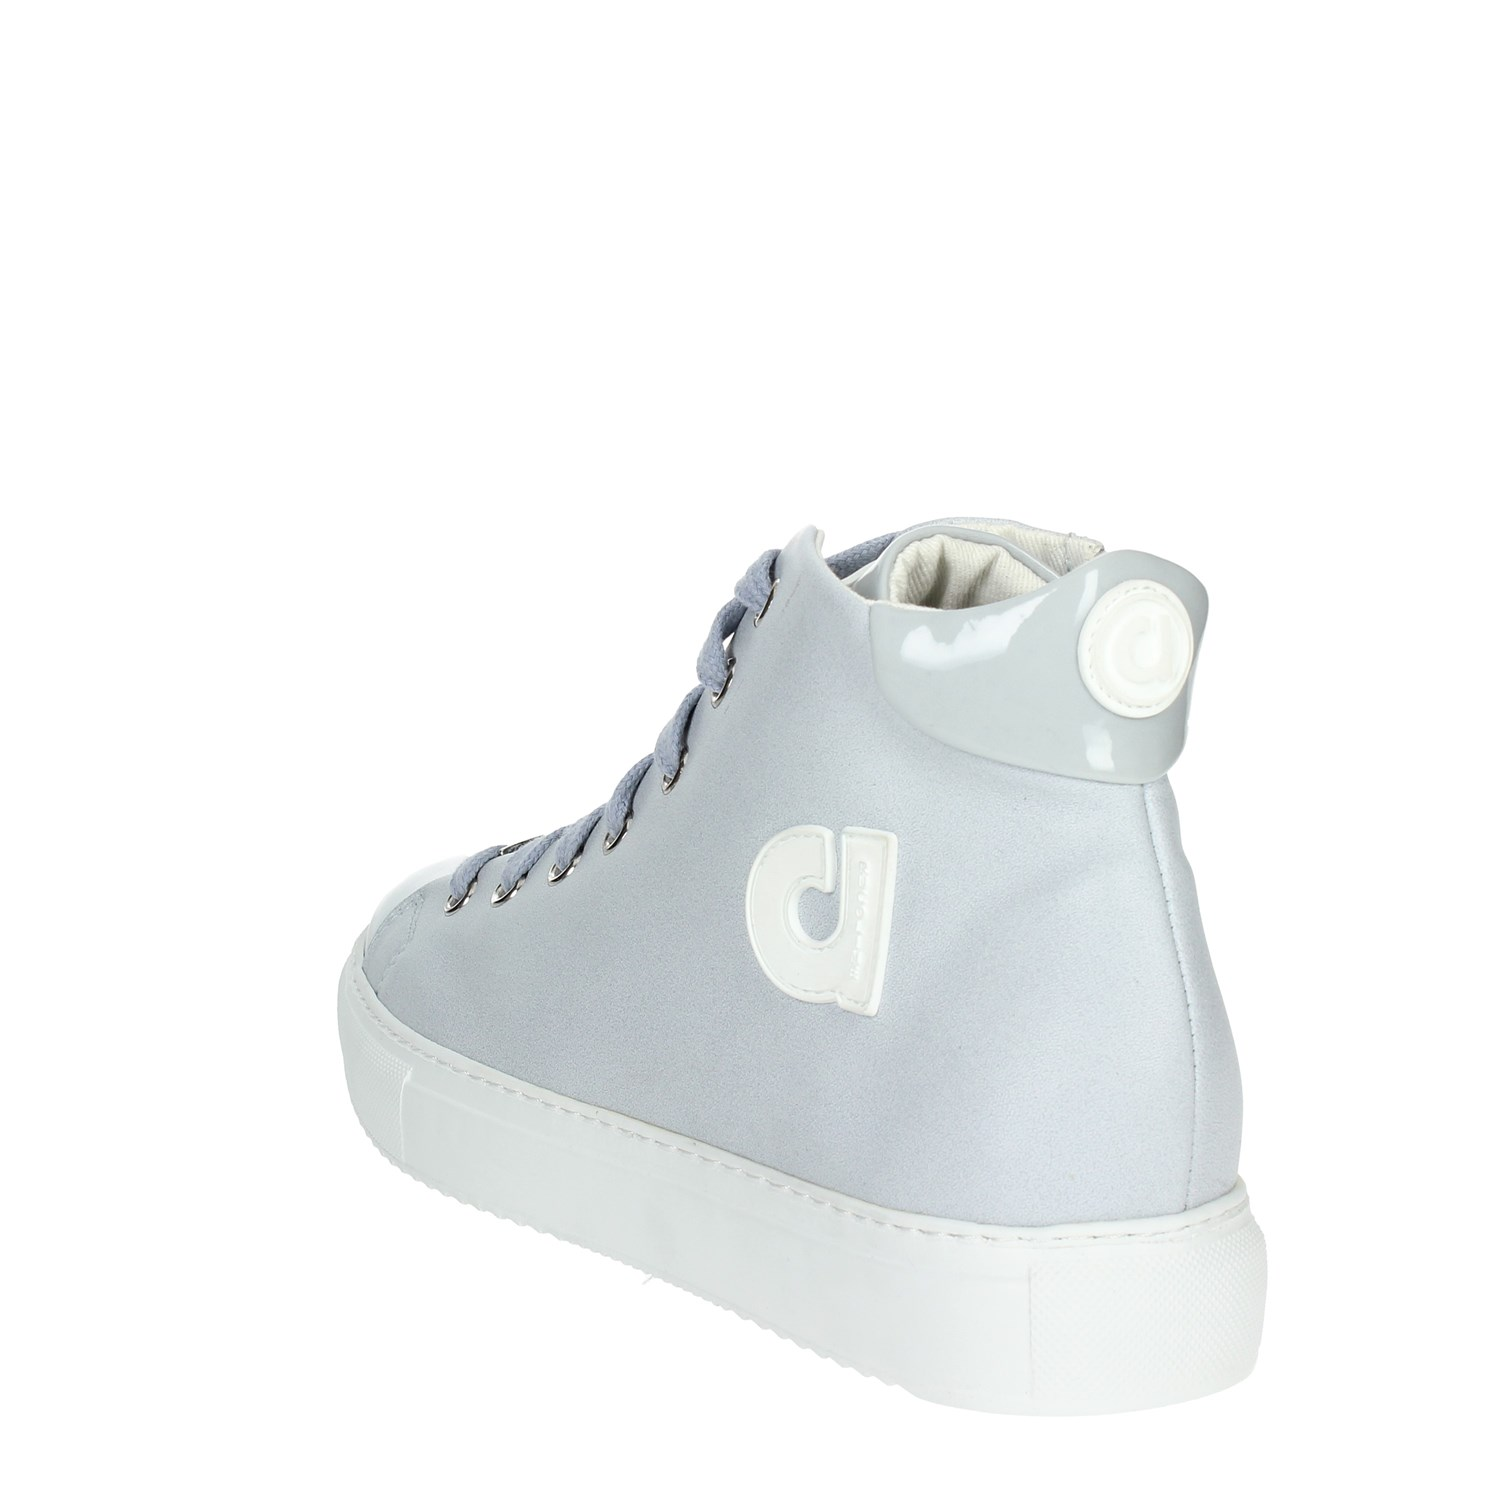 Hoch By Sneakers  Damen Agile By Hoch Rucoline  2815(69-A) Frühjahr/Sommer cced4b